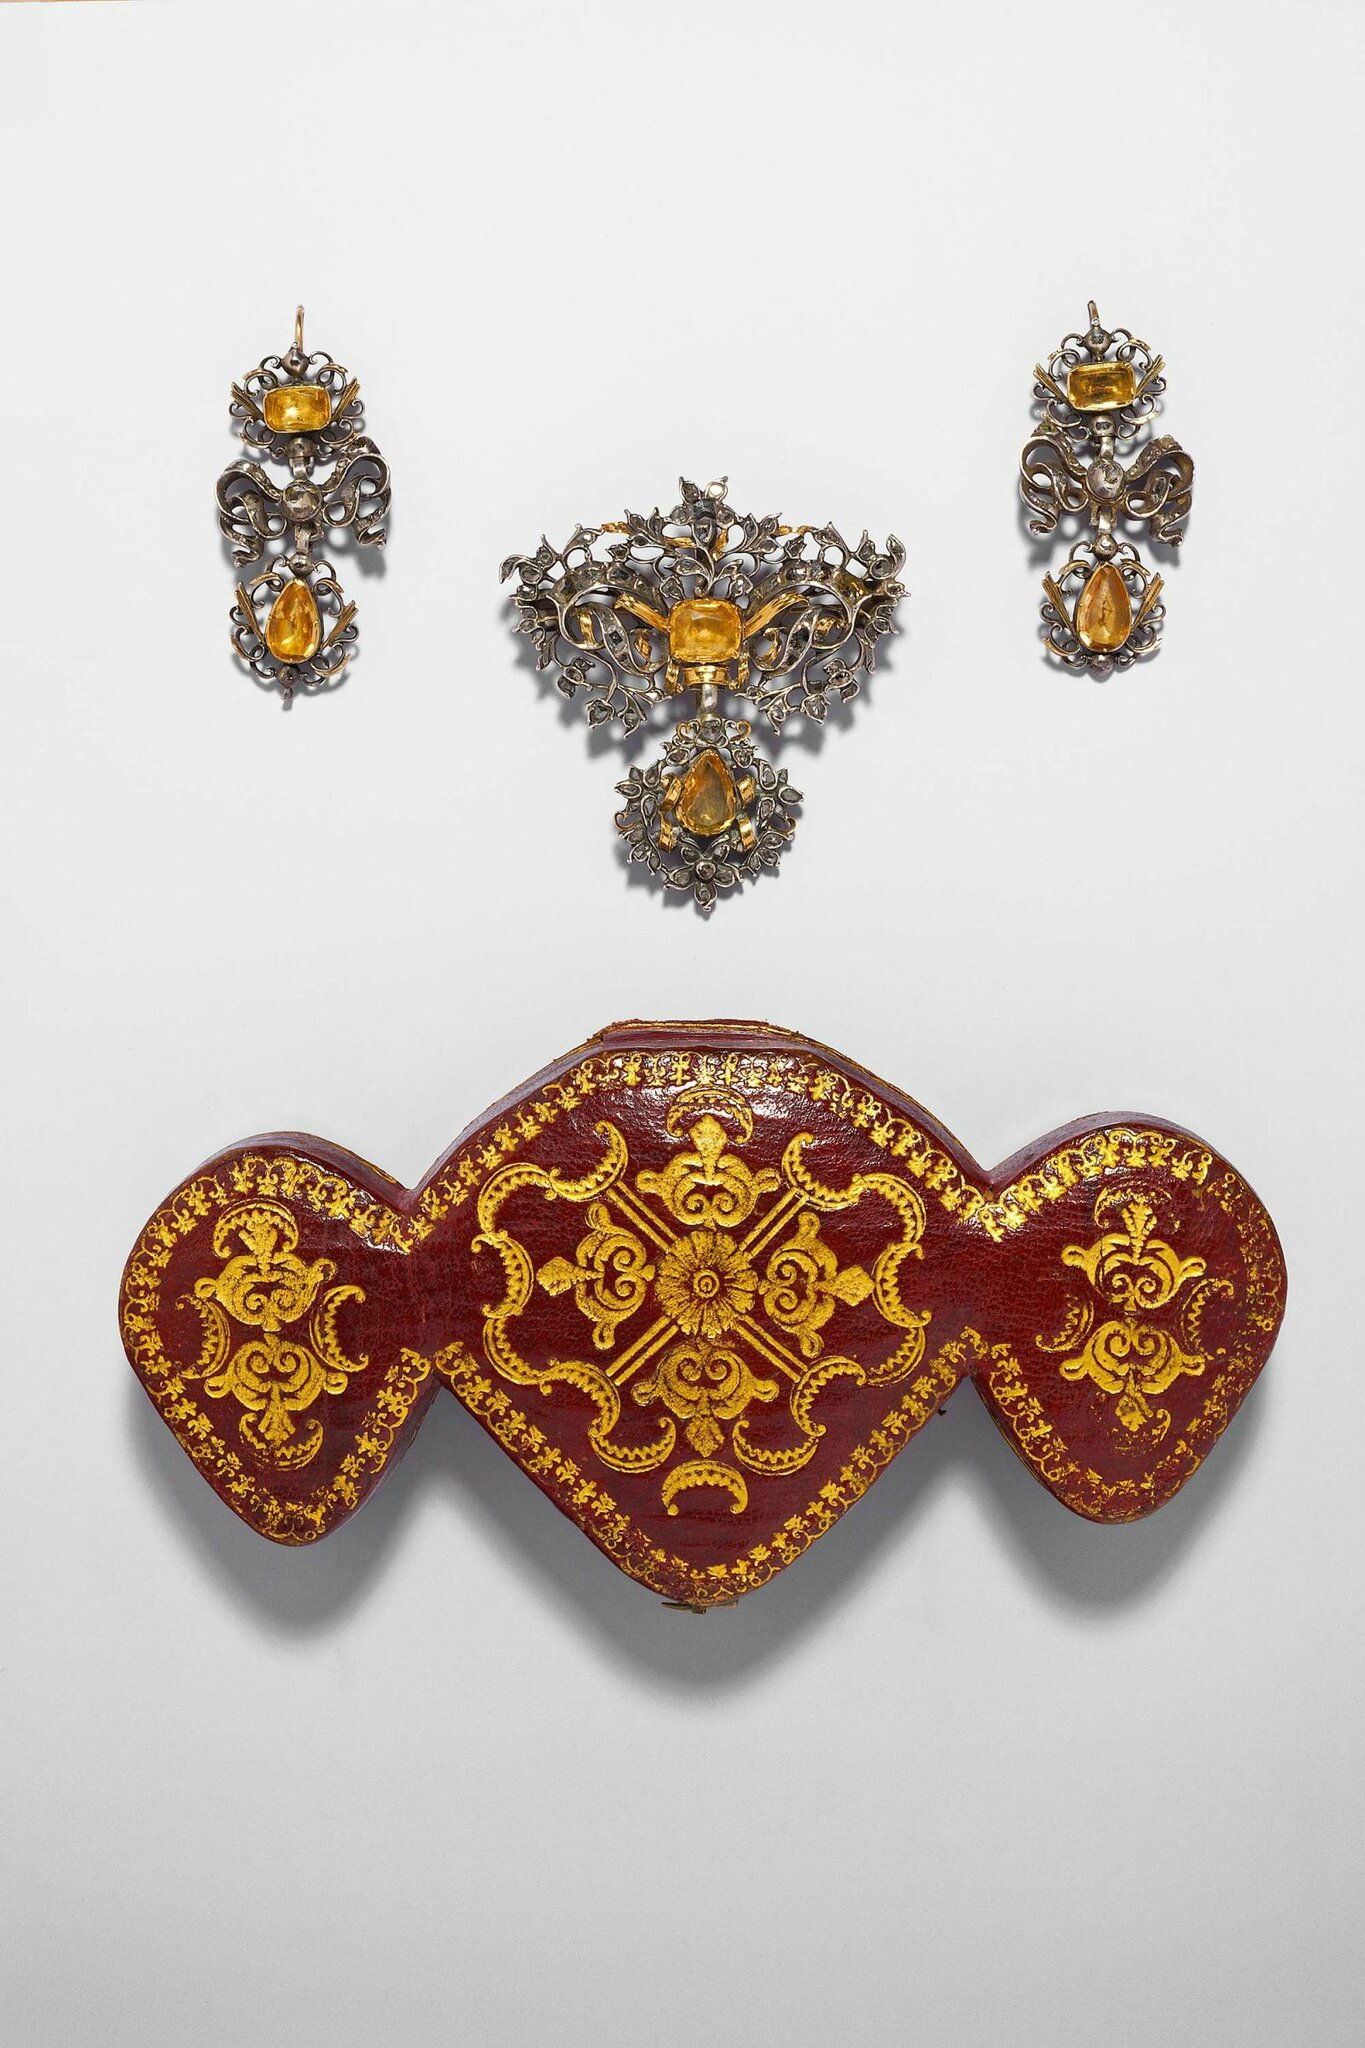 A demi parure with its fitted case, Portugal, last third of the 18th C